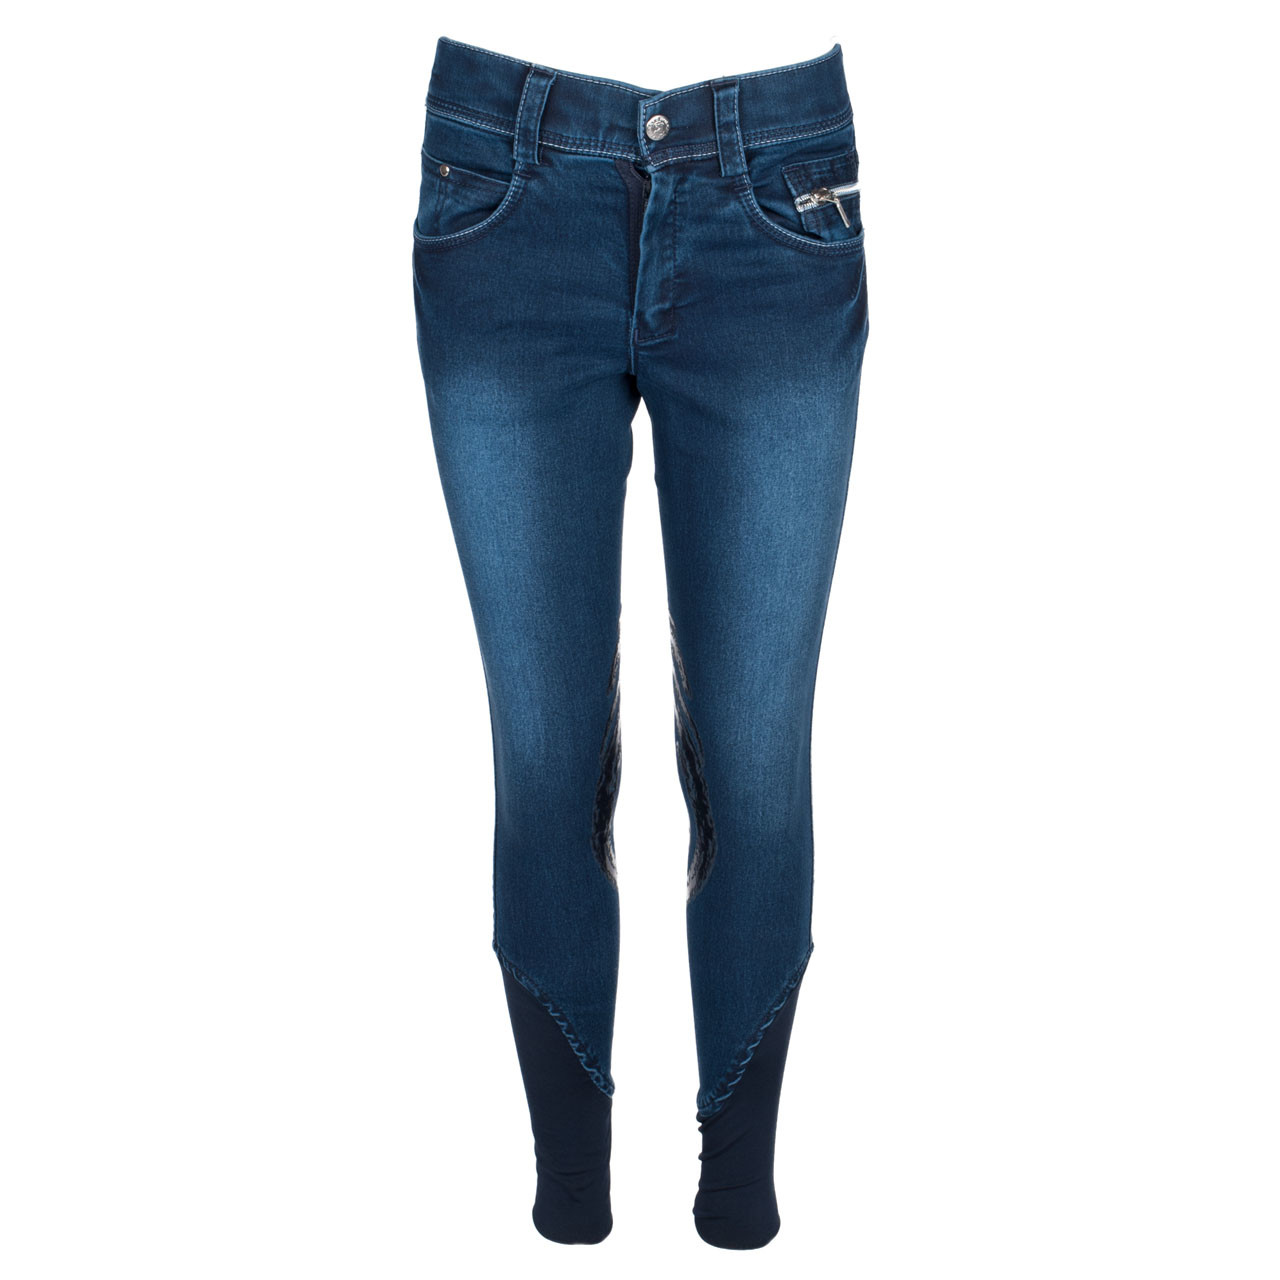 Harrys Horse Dirty Denim kinder paardrijbroek blauw maat:140